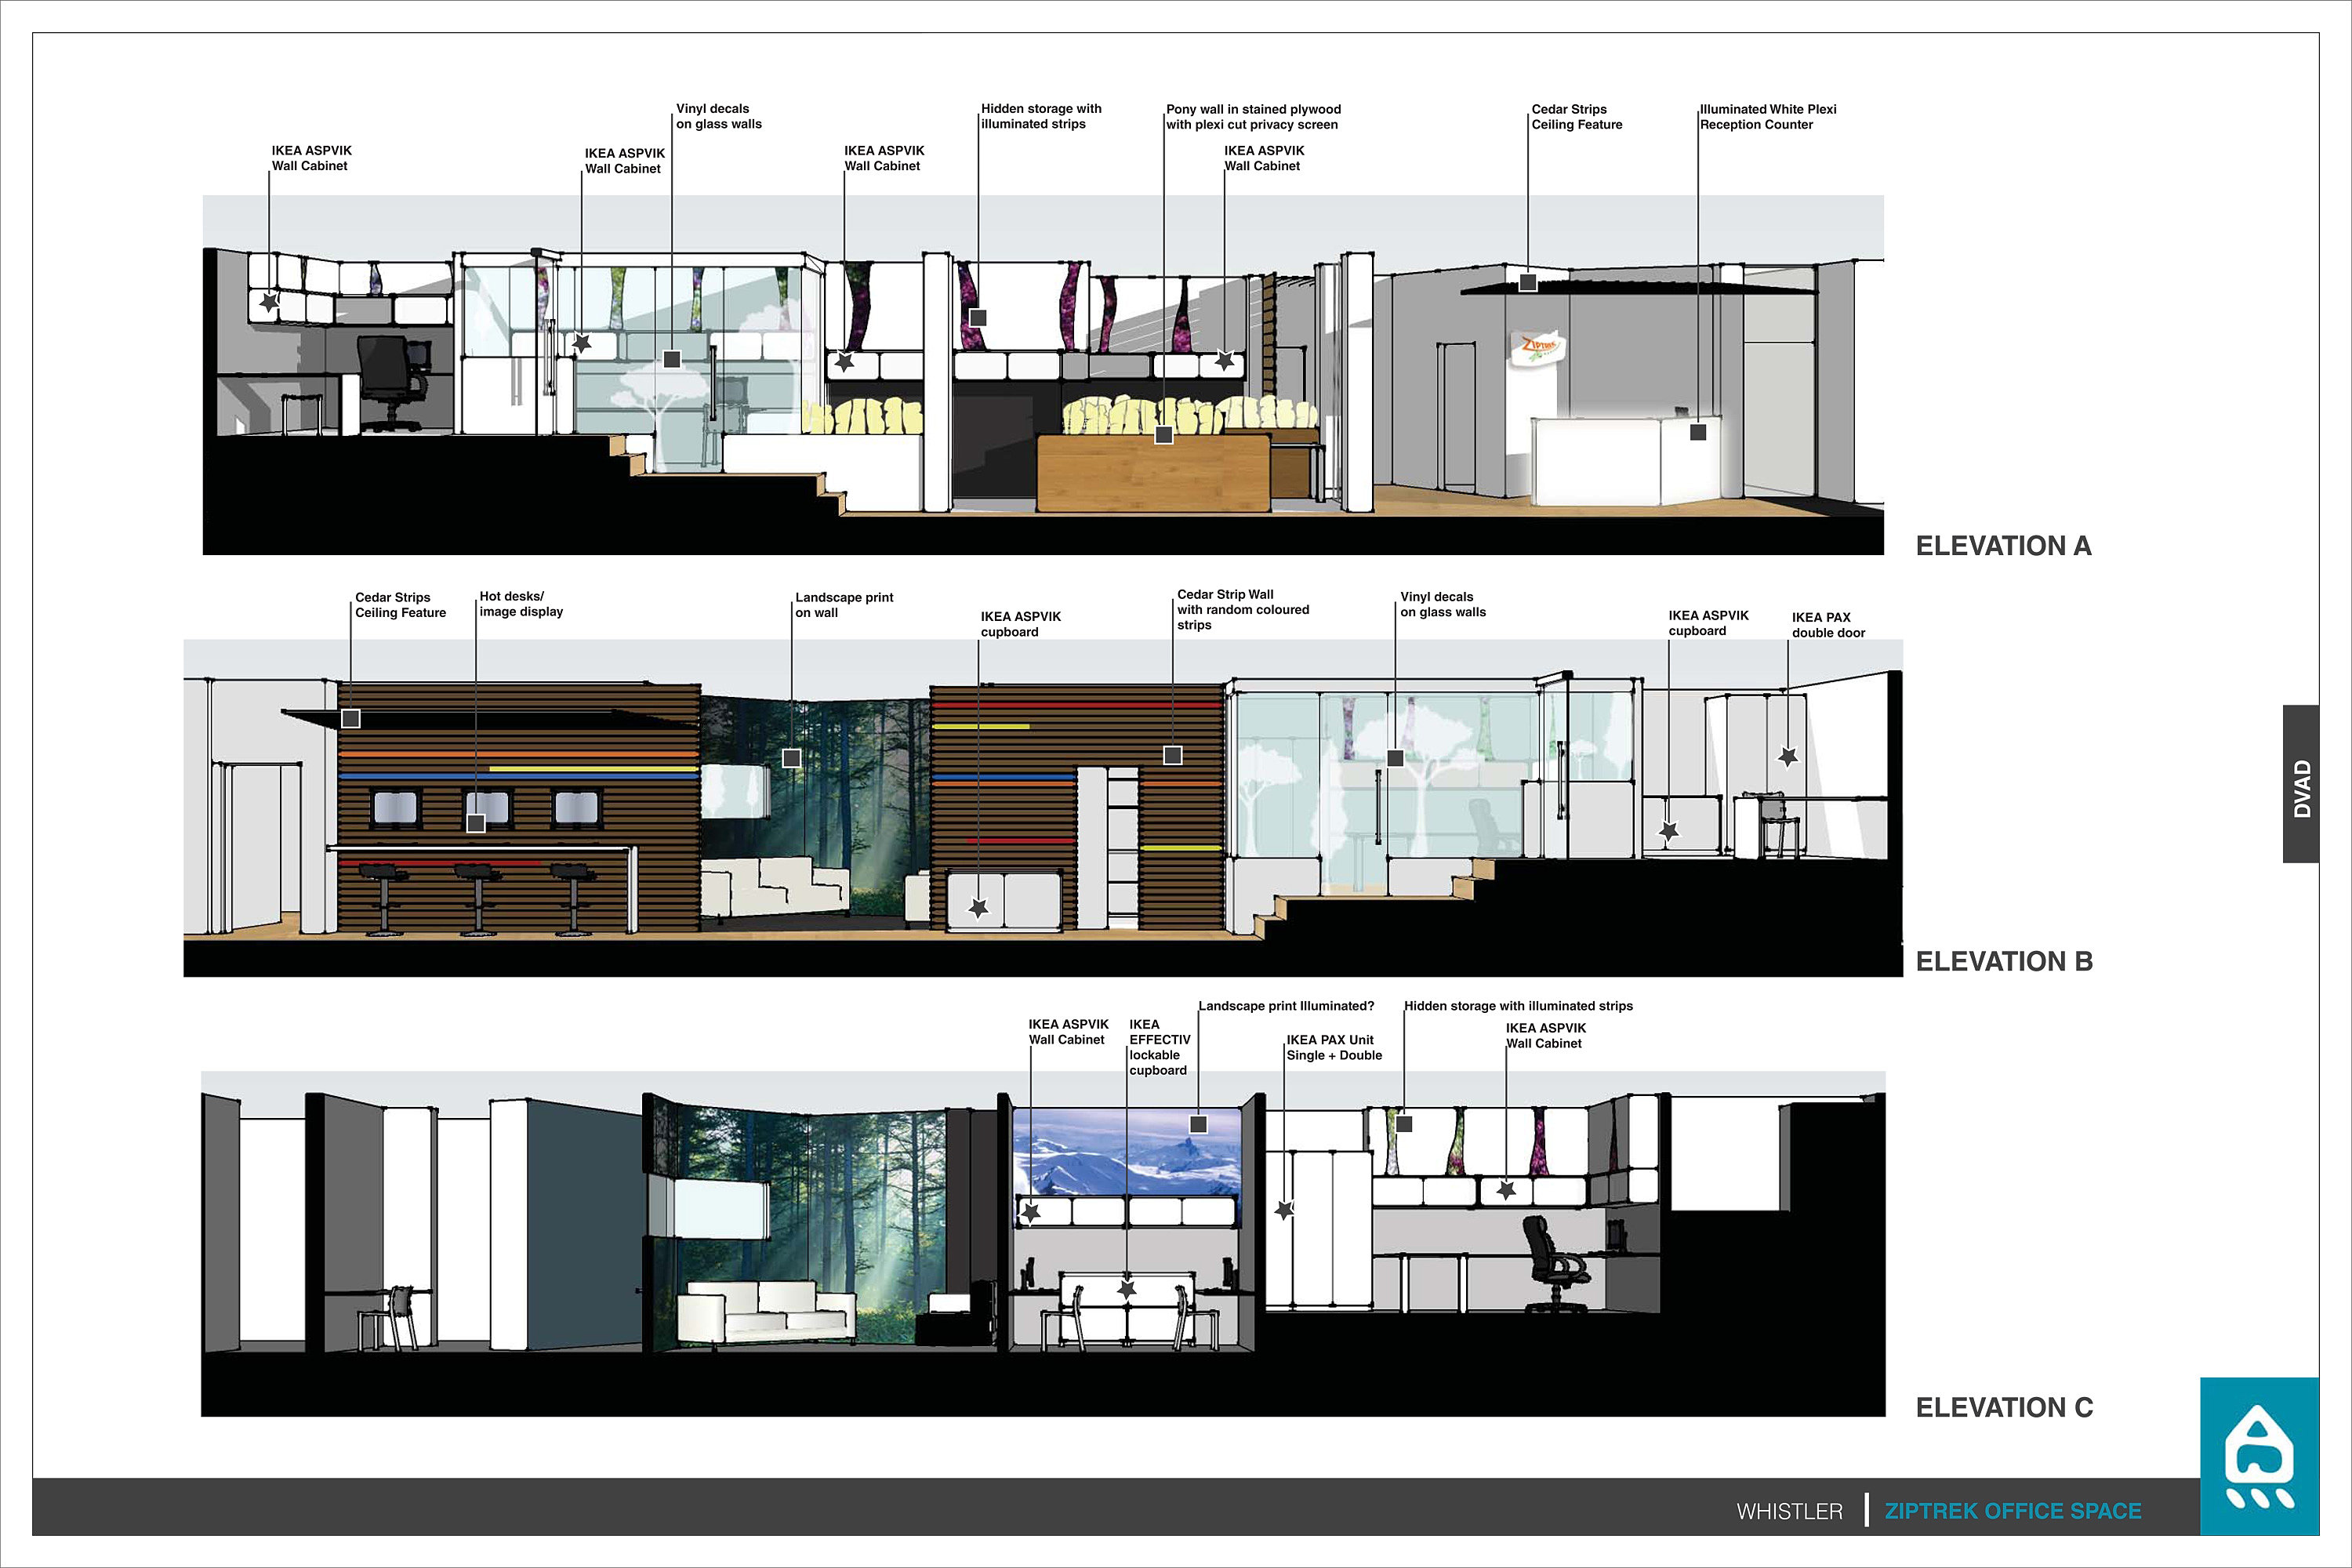 Dvad Inc Whistler Architect Architecture Planning Interiors Inside Ideas Interiors design about Everything [magnanprojects.com]